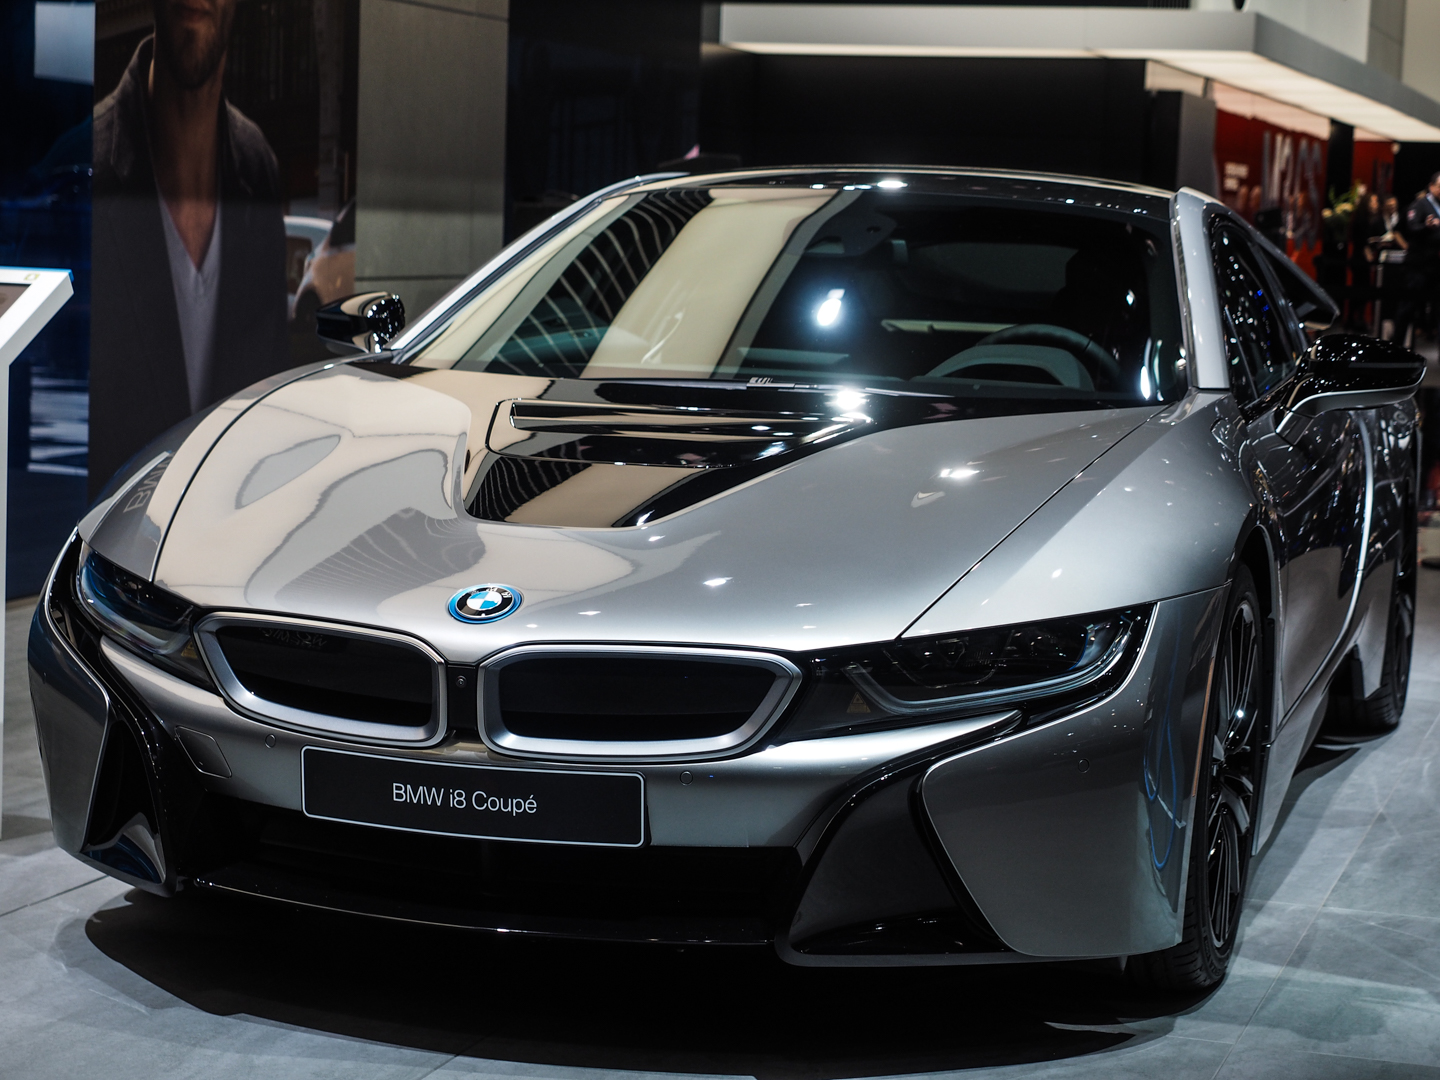 2018 Detroid Auto Show Bmw I8 Coupe Lci Refresh Facelift 10 830x623